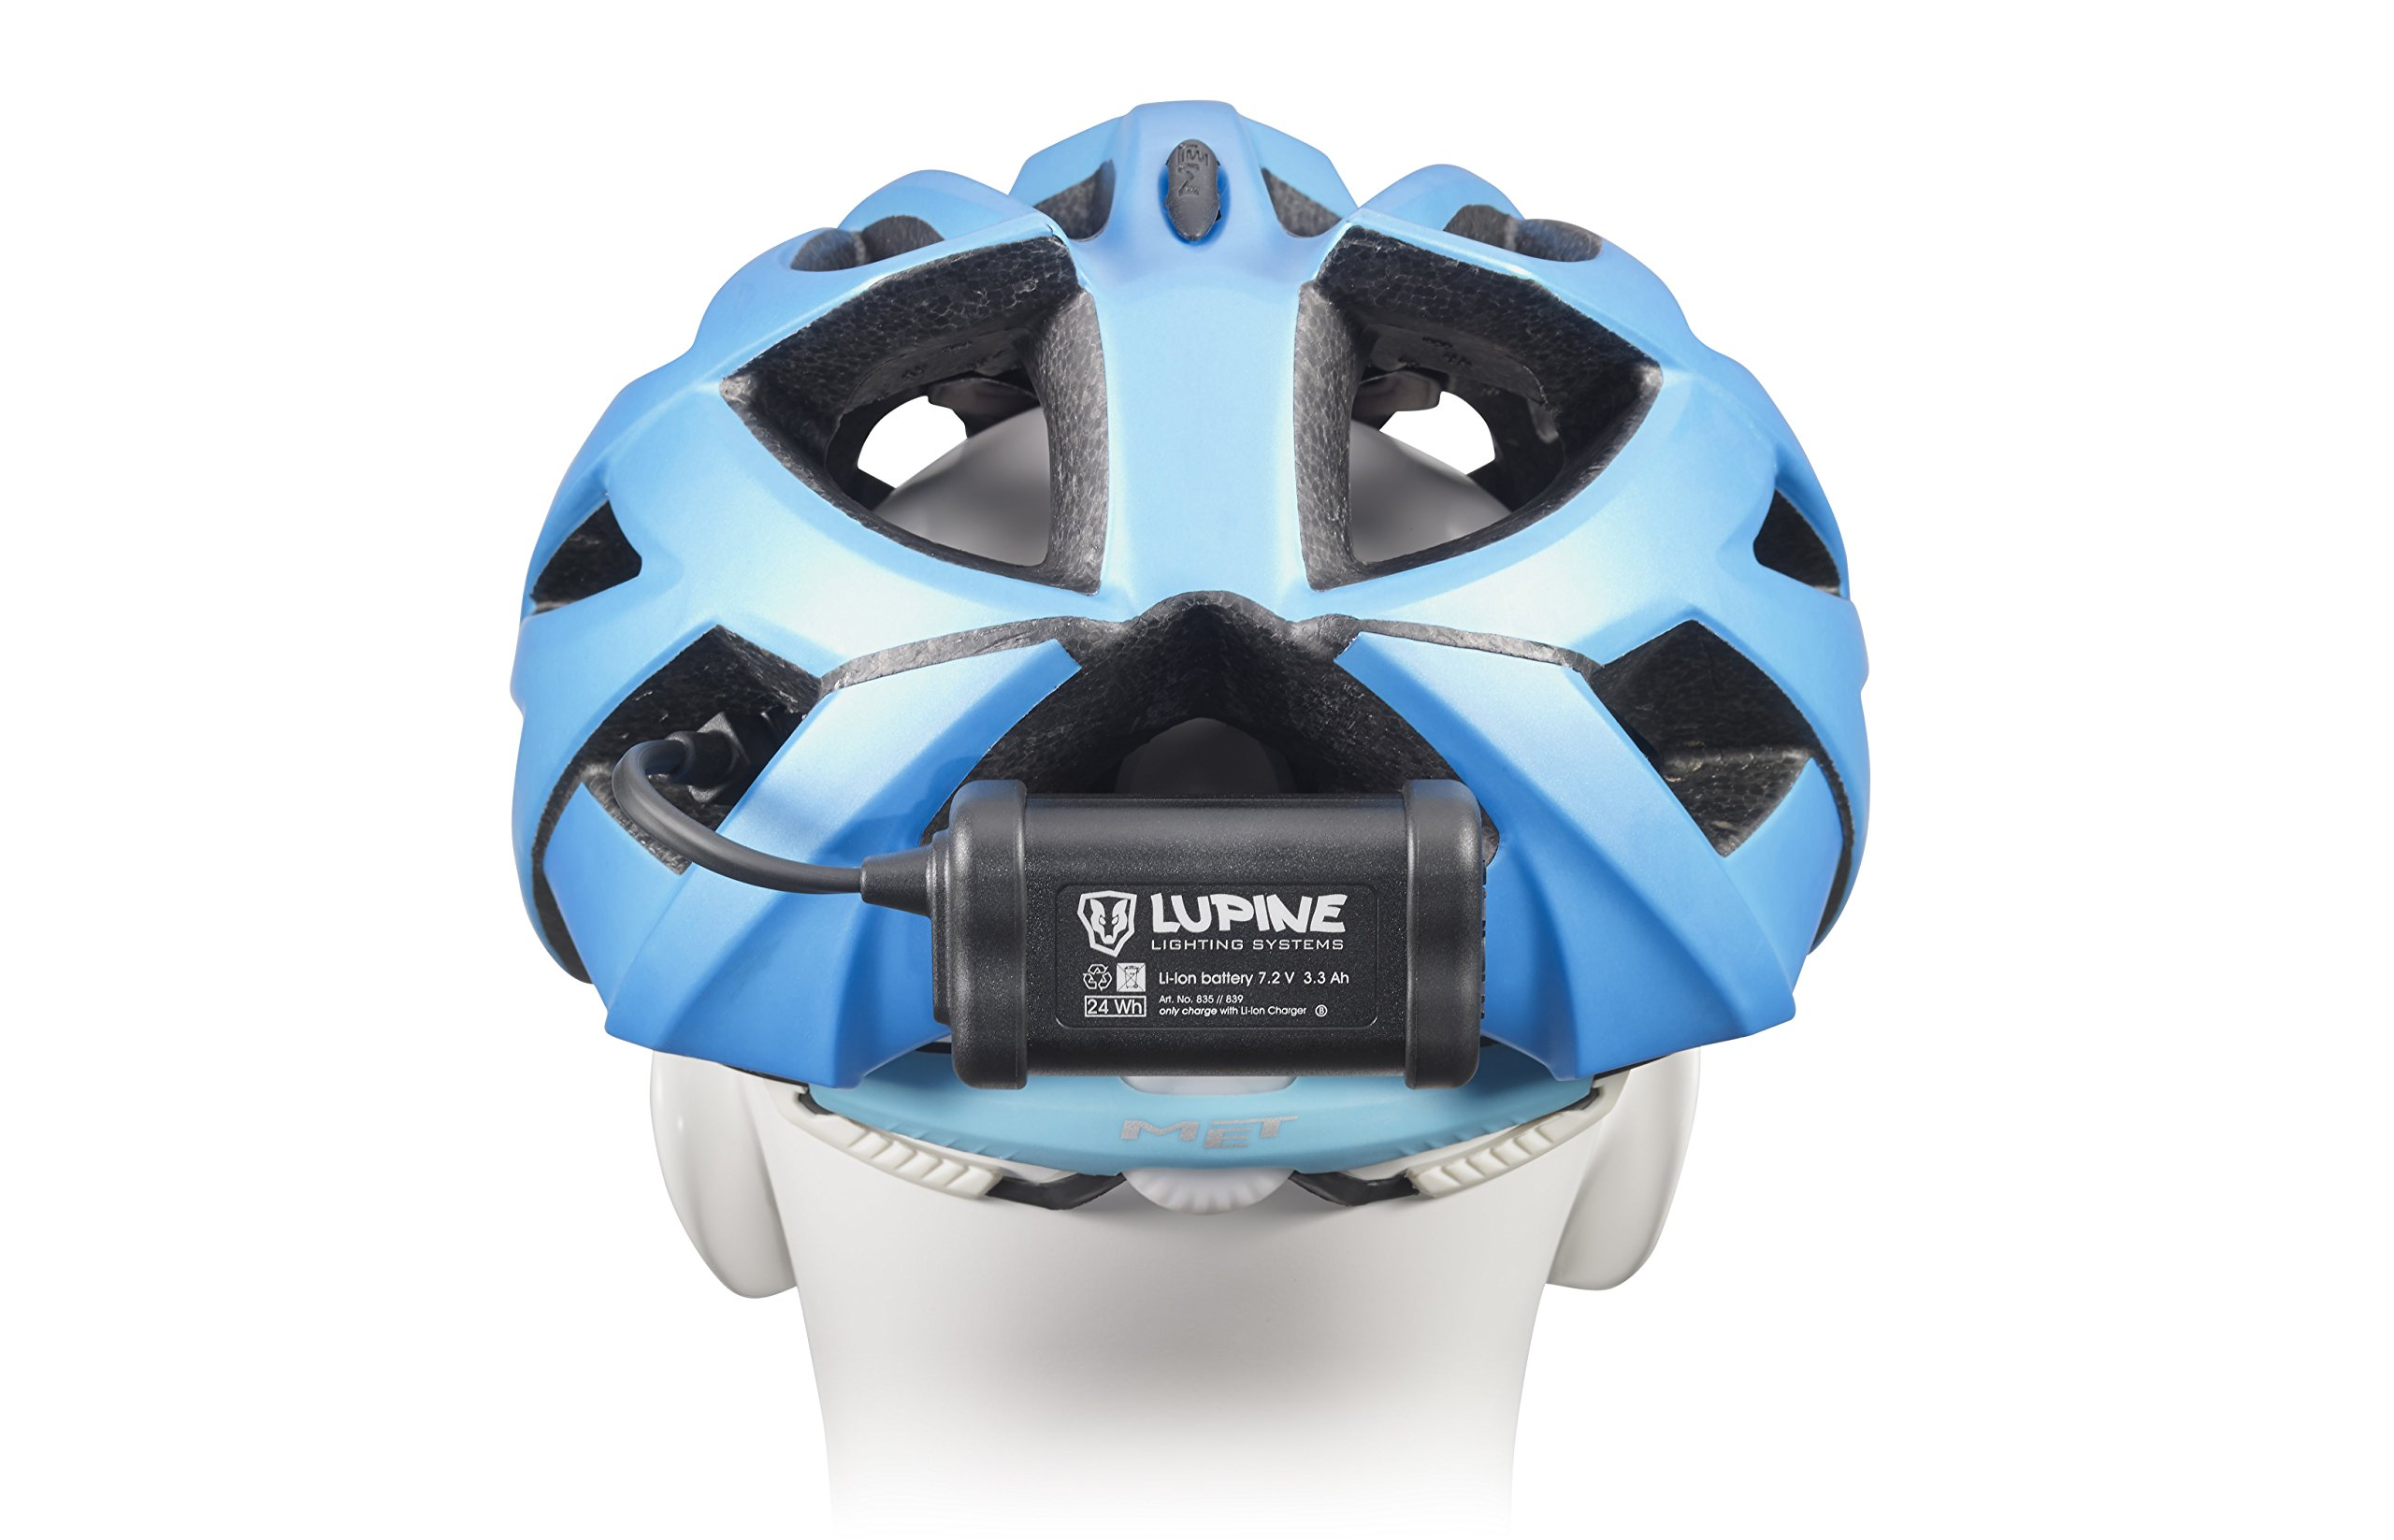 Lupine Lighting Systems Piko R 4 1800 Lumen 3.3 Ah hardcase battery with velcro, helmet mount with velcro, Wiesel charger, 120cm extension cable, Bluetooth Remote + mount (2018 Model) by Lupine Lighting Systems (Image #3)